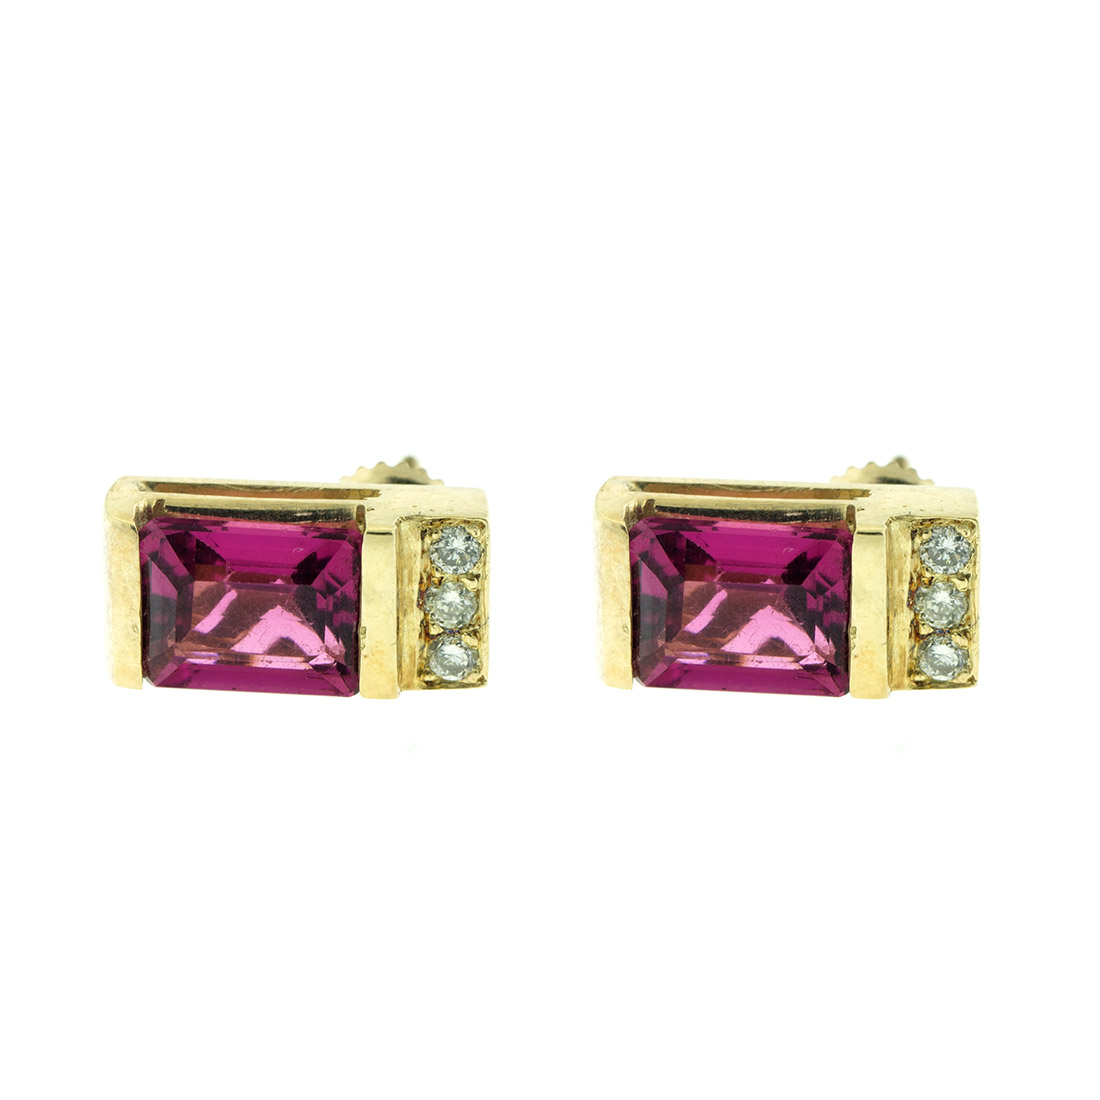 """""14k Yellow Gold Diamond and Pink Topaz Earrings"""""" 816121"